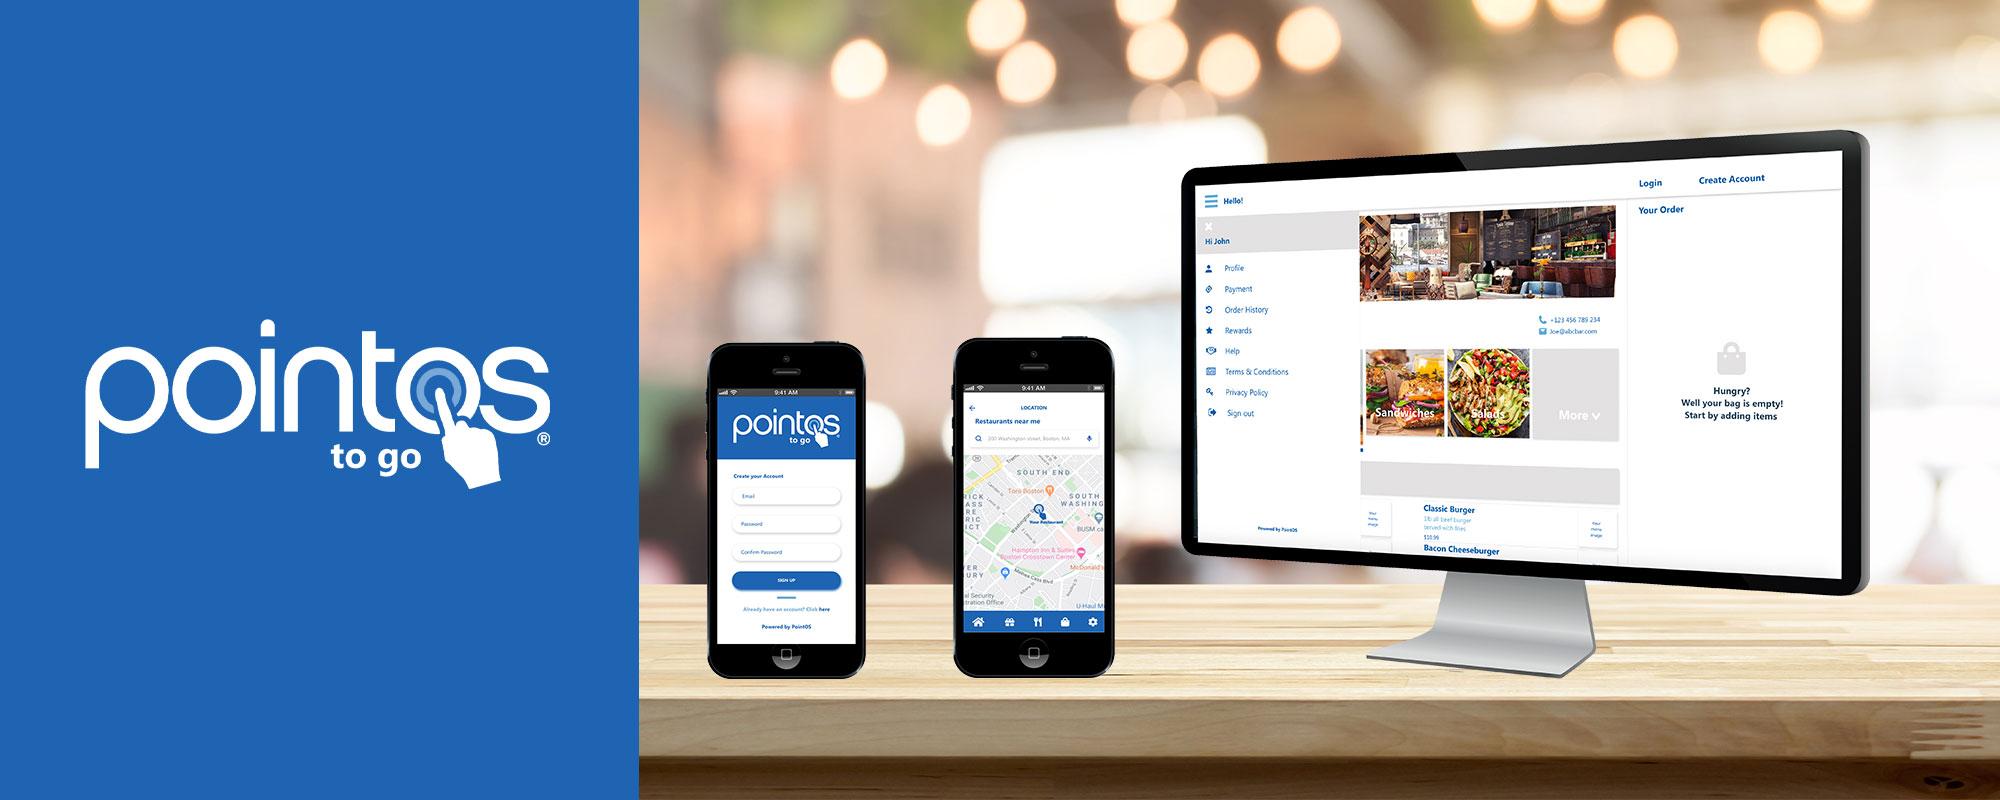 PointOS To Go feature image